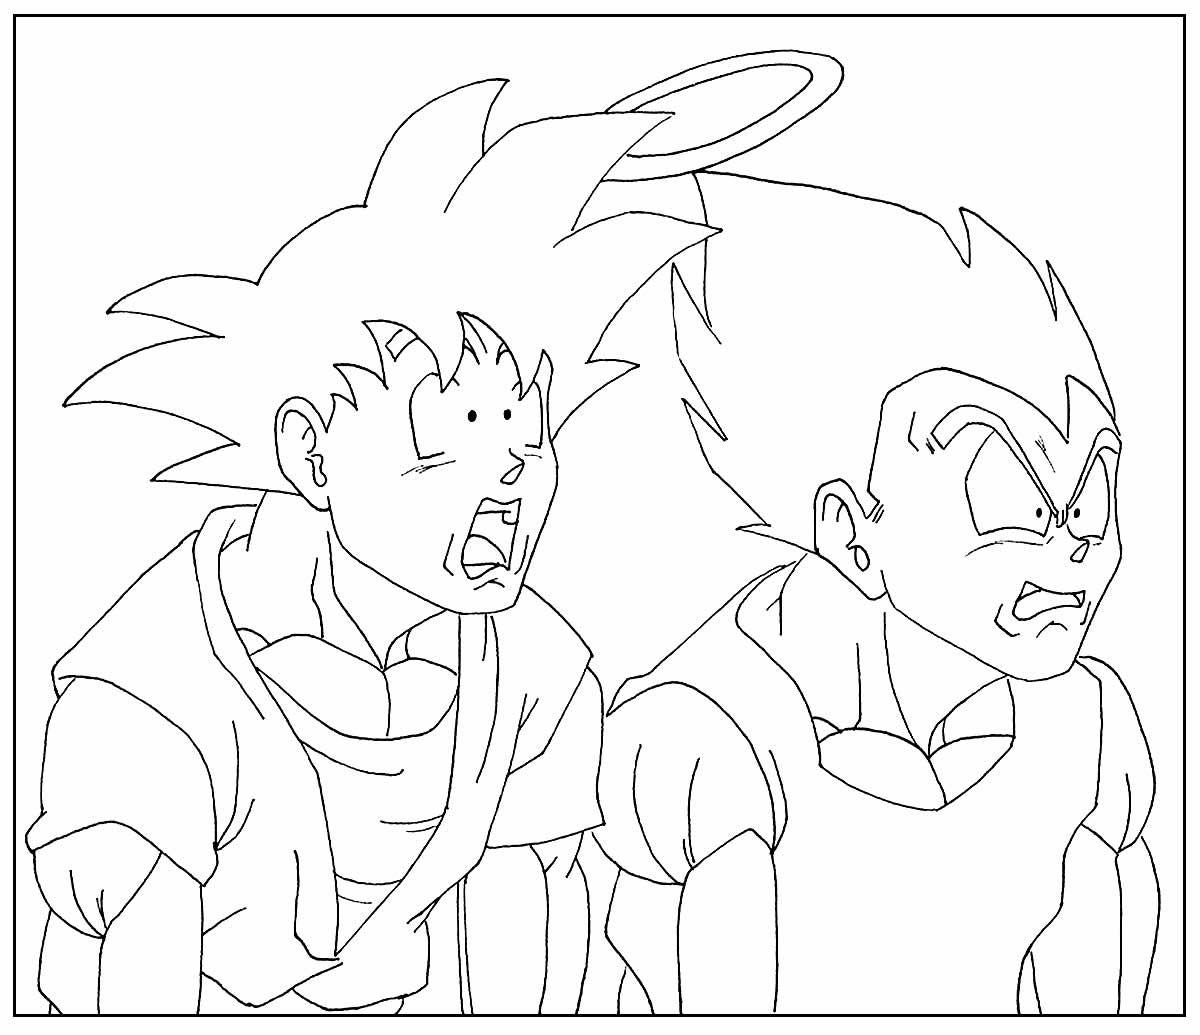 Goku drawing for coloring